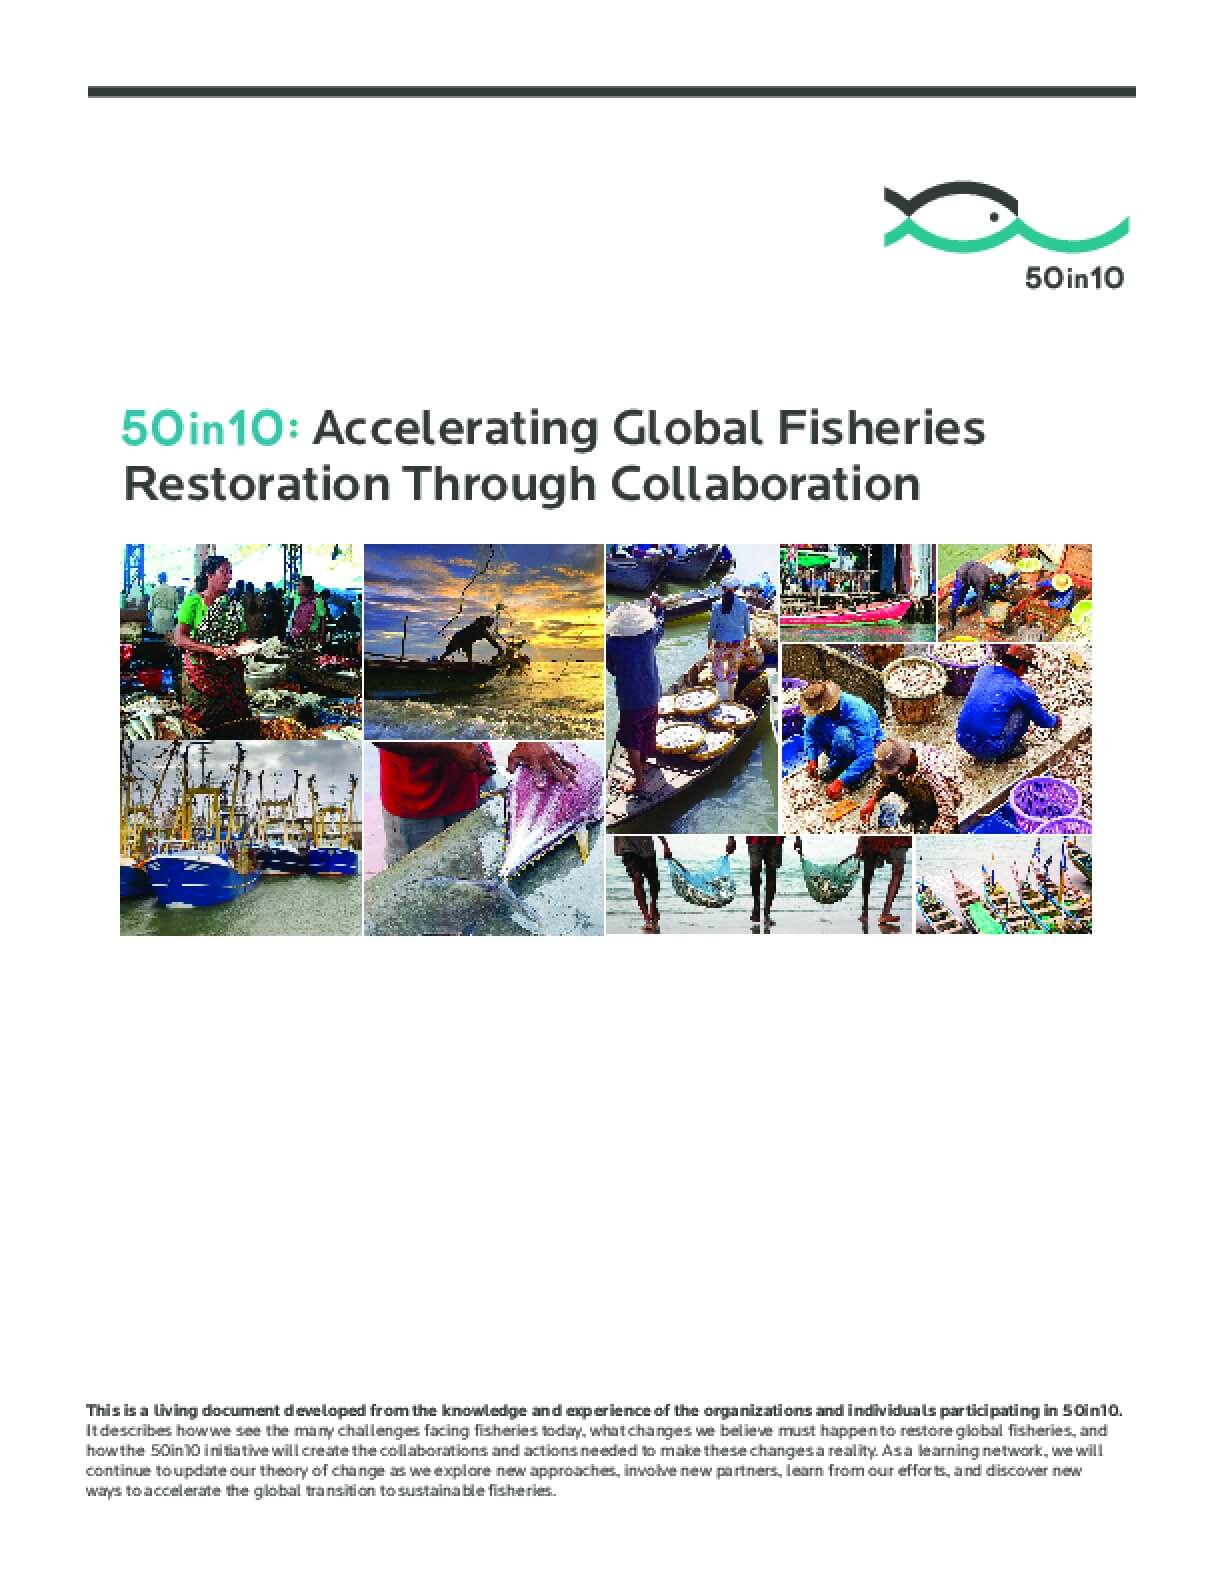 50 in 10: Accelerating Global Fisheries Restoration Through Collaboration